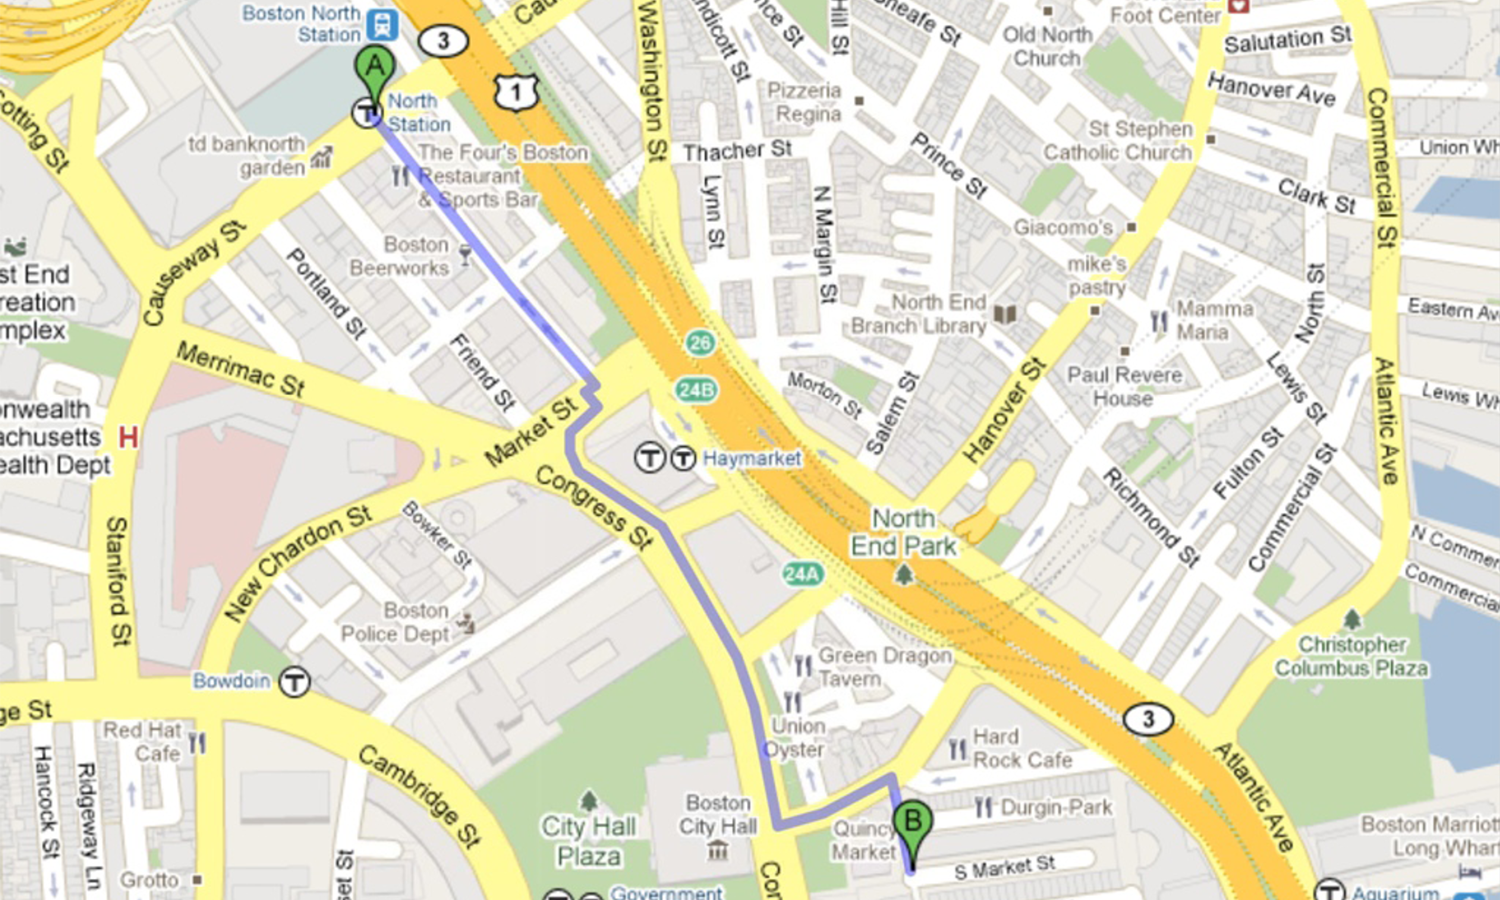 We were tasked with following her journey from North Station to Quincy Market in Boston.